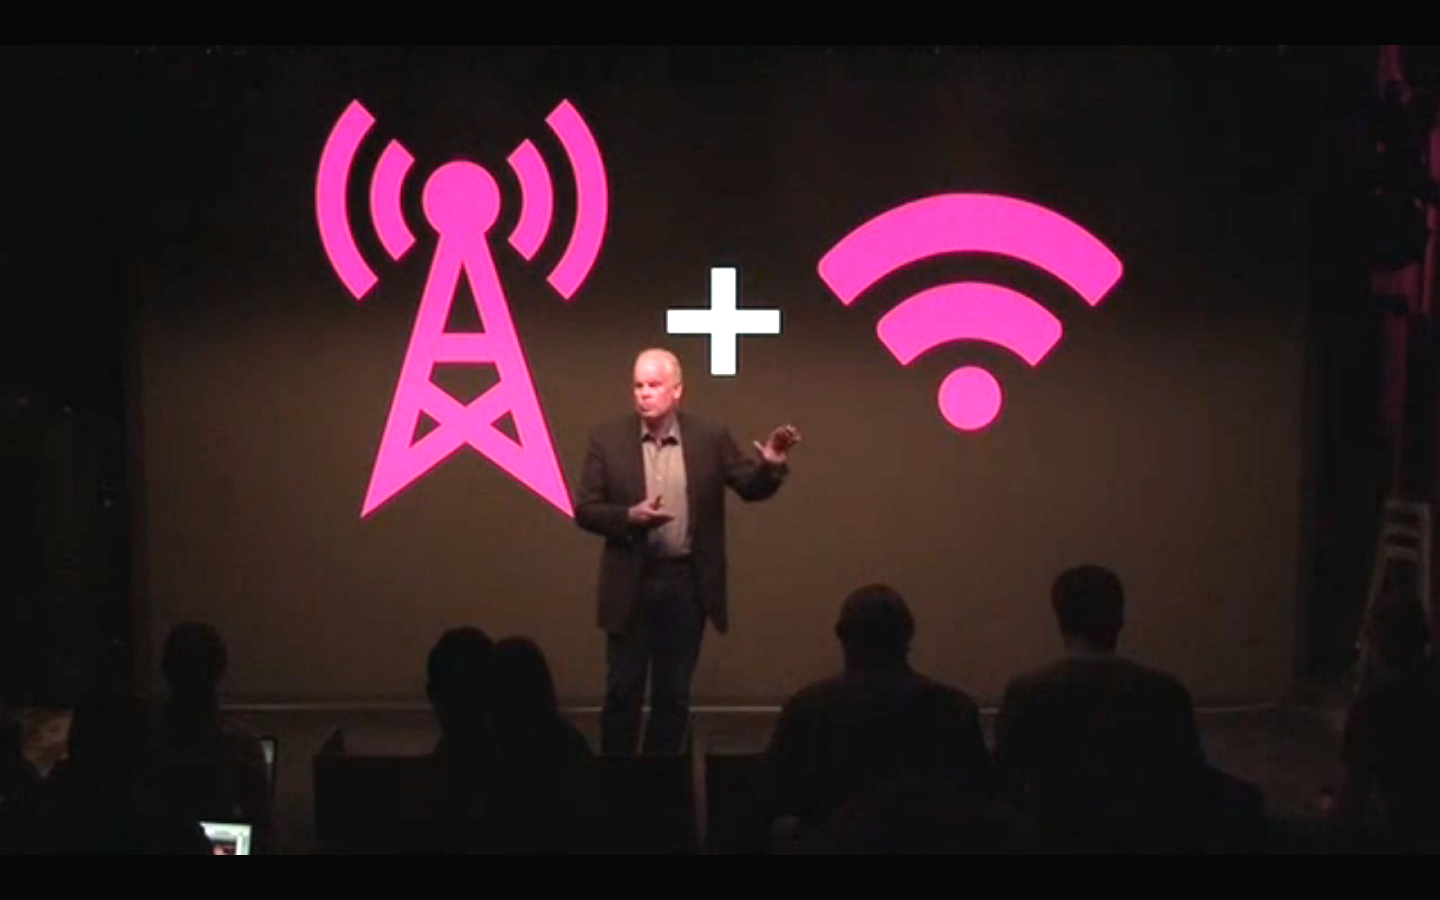 T-Mobile Uncarrier 7 0: WiFi Calling gets an overhaul, free wireless